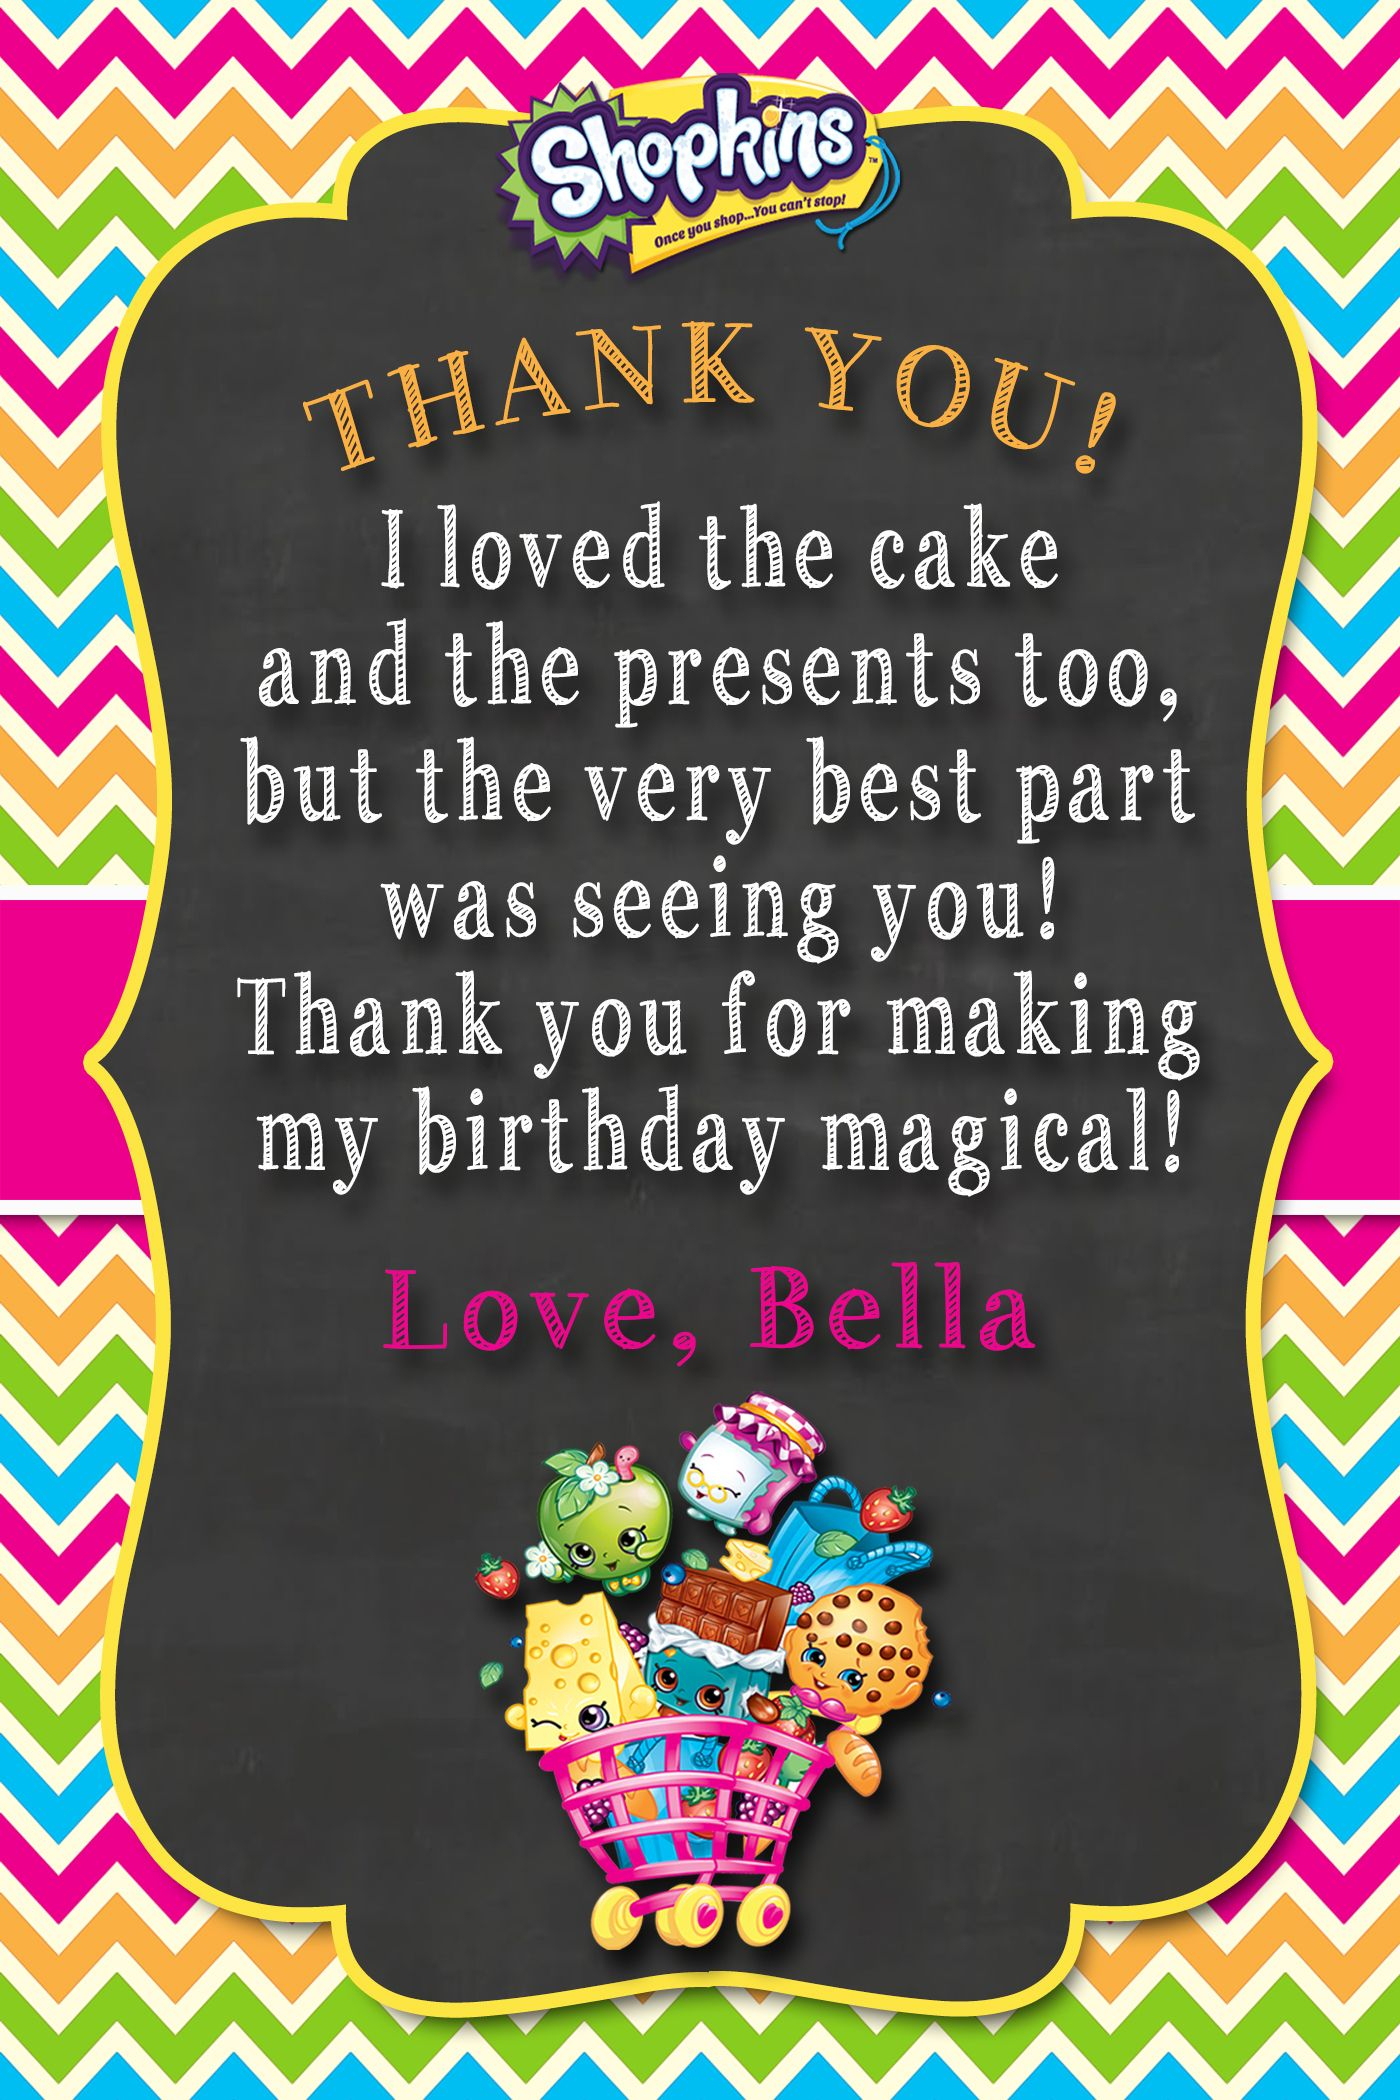 Shopkins Thank You Card | Shopkins 4 My Bianca! In 2019 | Shopkins - Free Printable Shopkins Thank You Cards